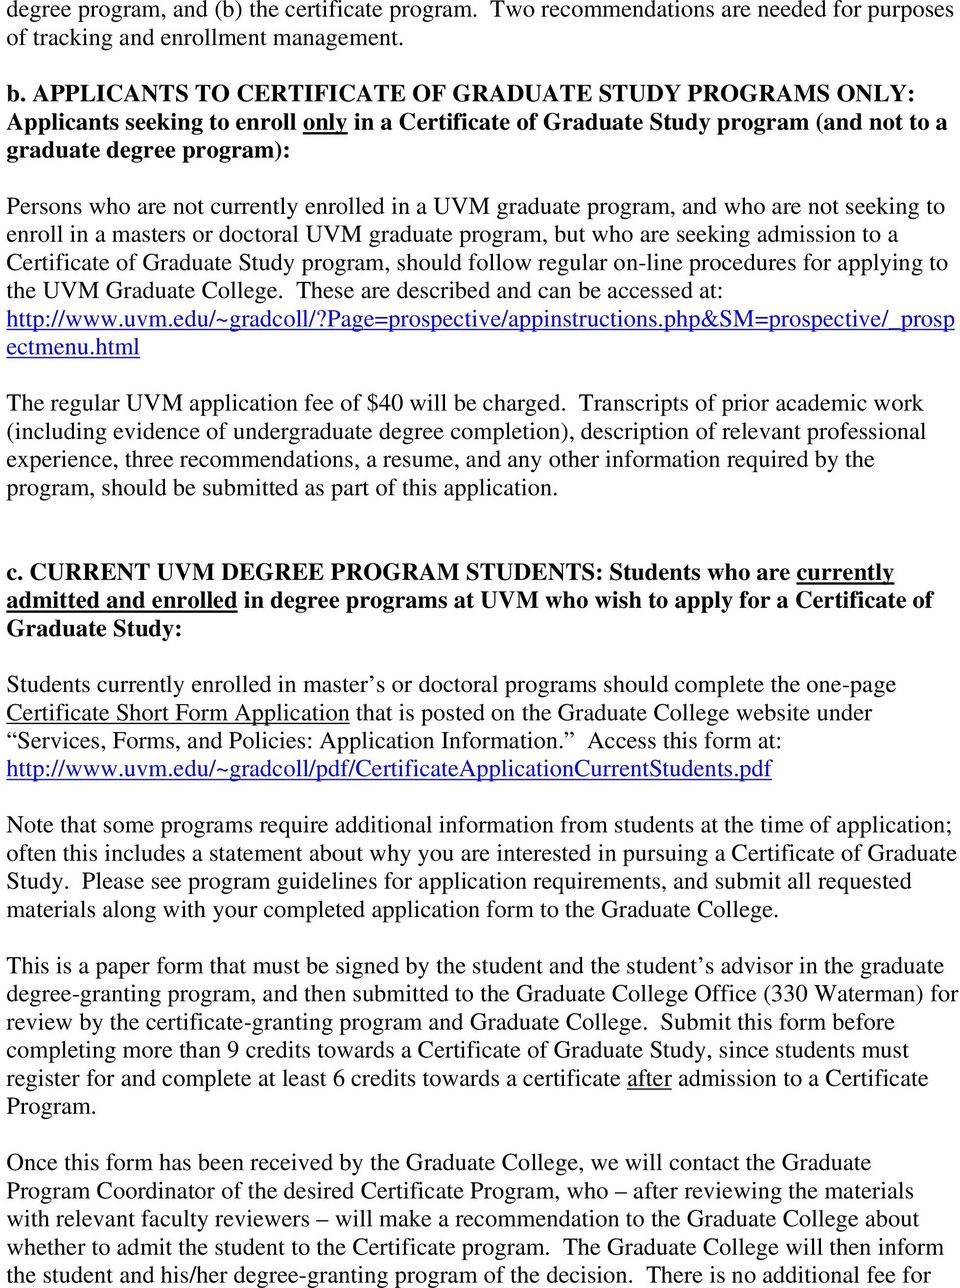 currently enrolled in a UVM graduate program, and who are not seeking to enroll in a masters or doctoral UVM graduate program, but who are seeking admission to a Certificate of Graduate Study